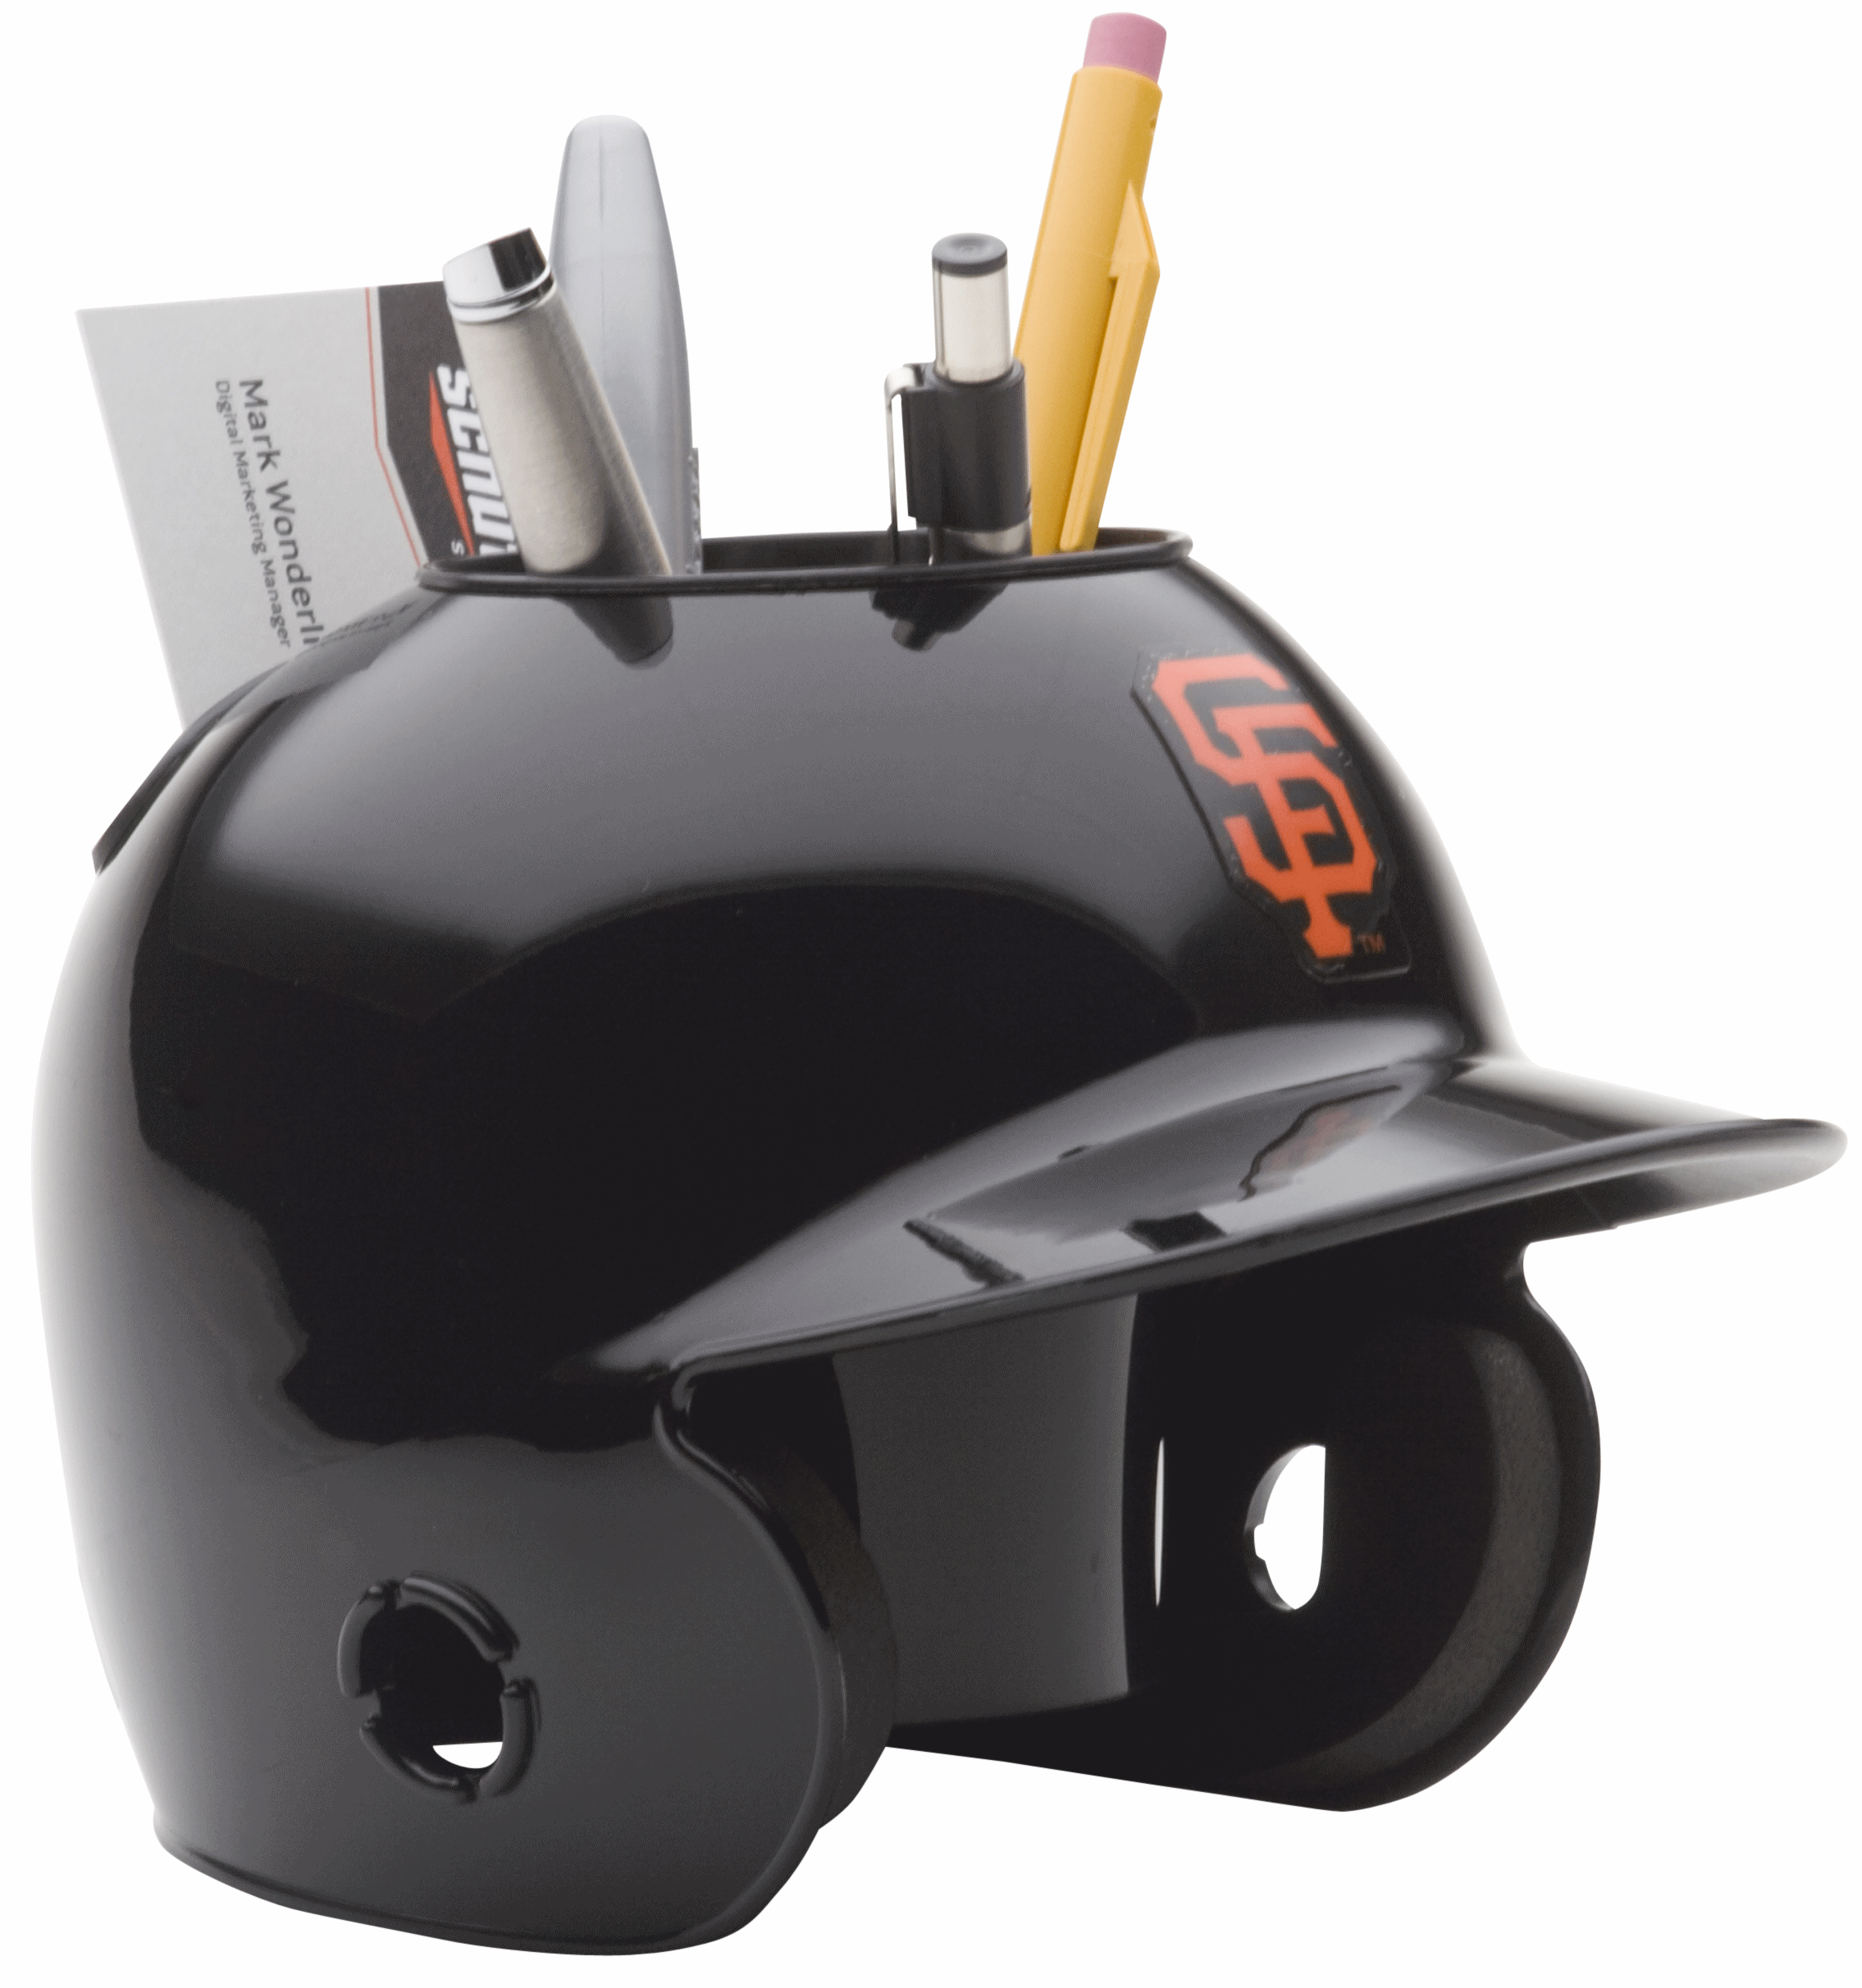 San Francisco Giants Miniature Batters Helmet Desk Caddy